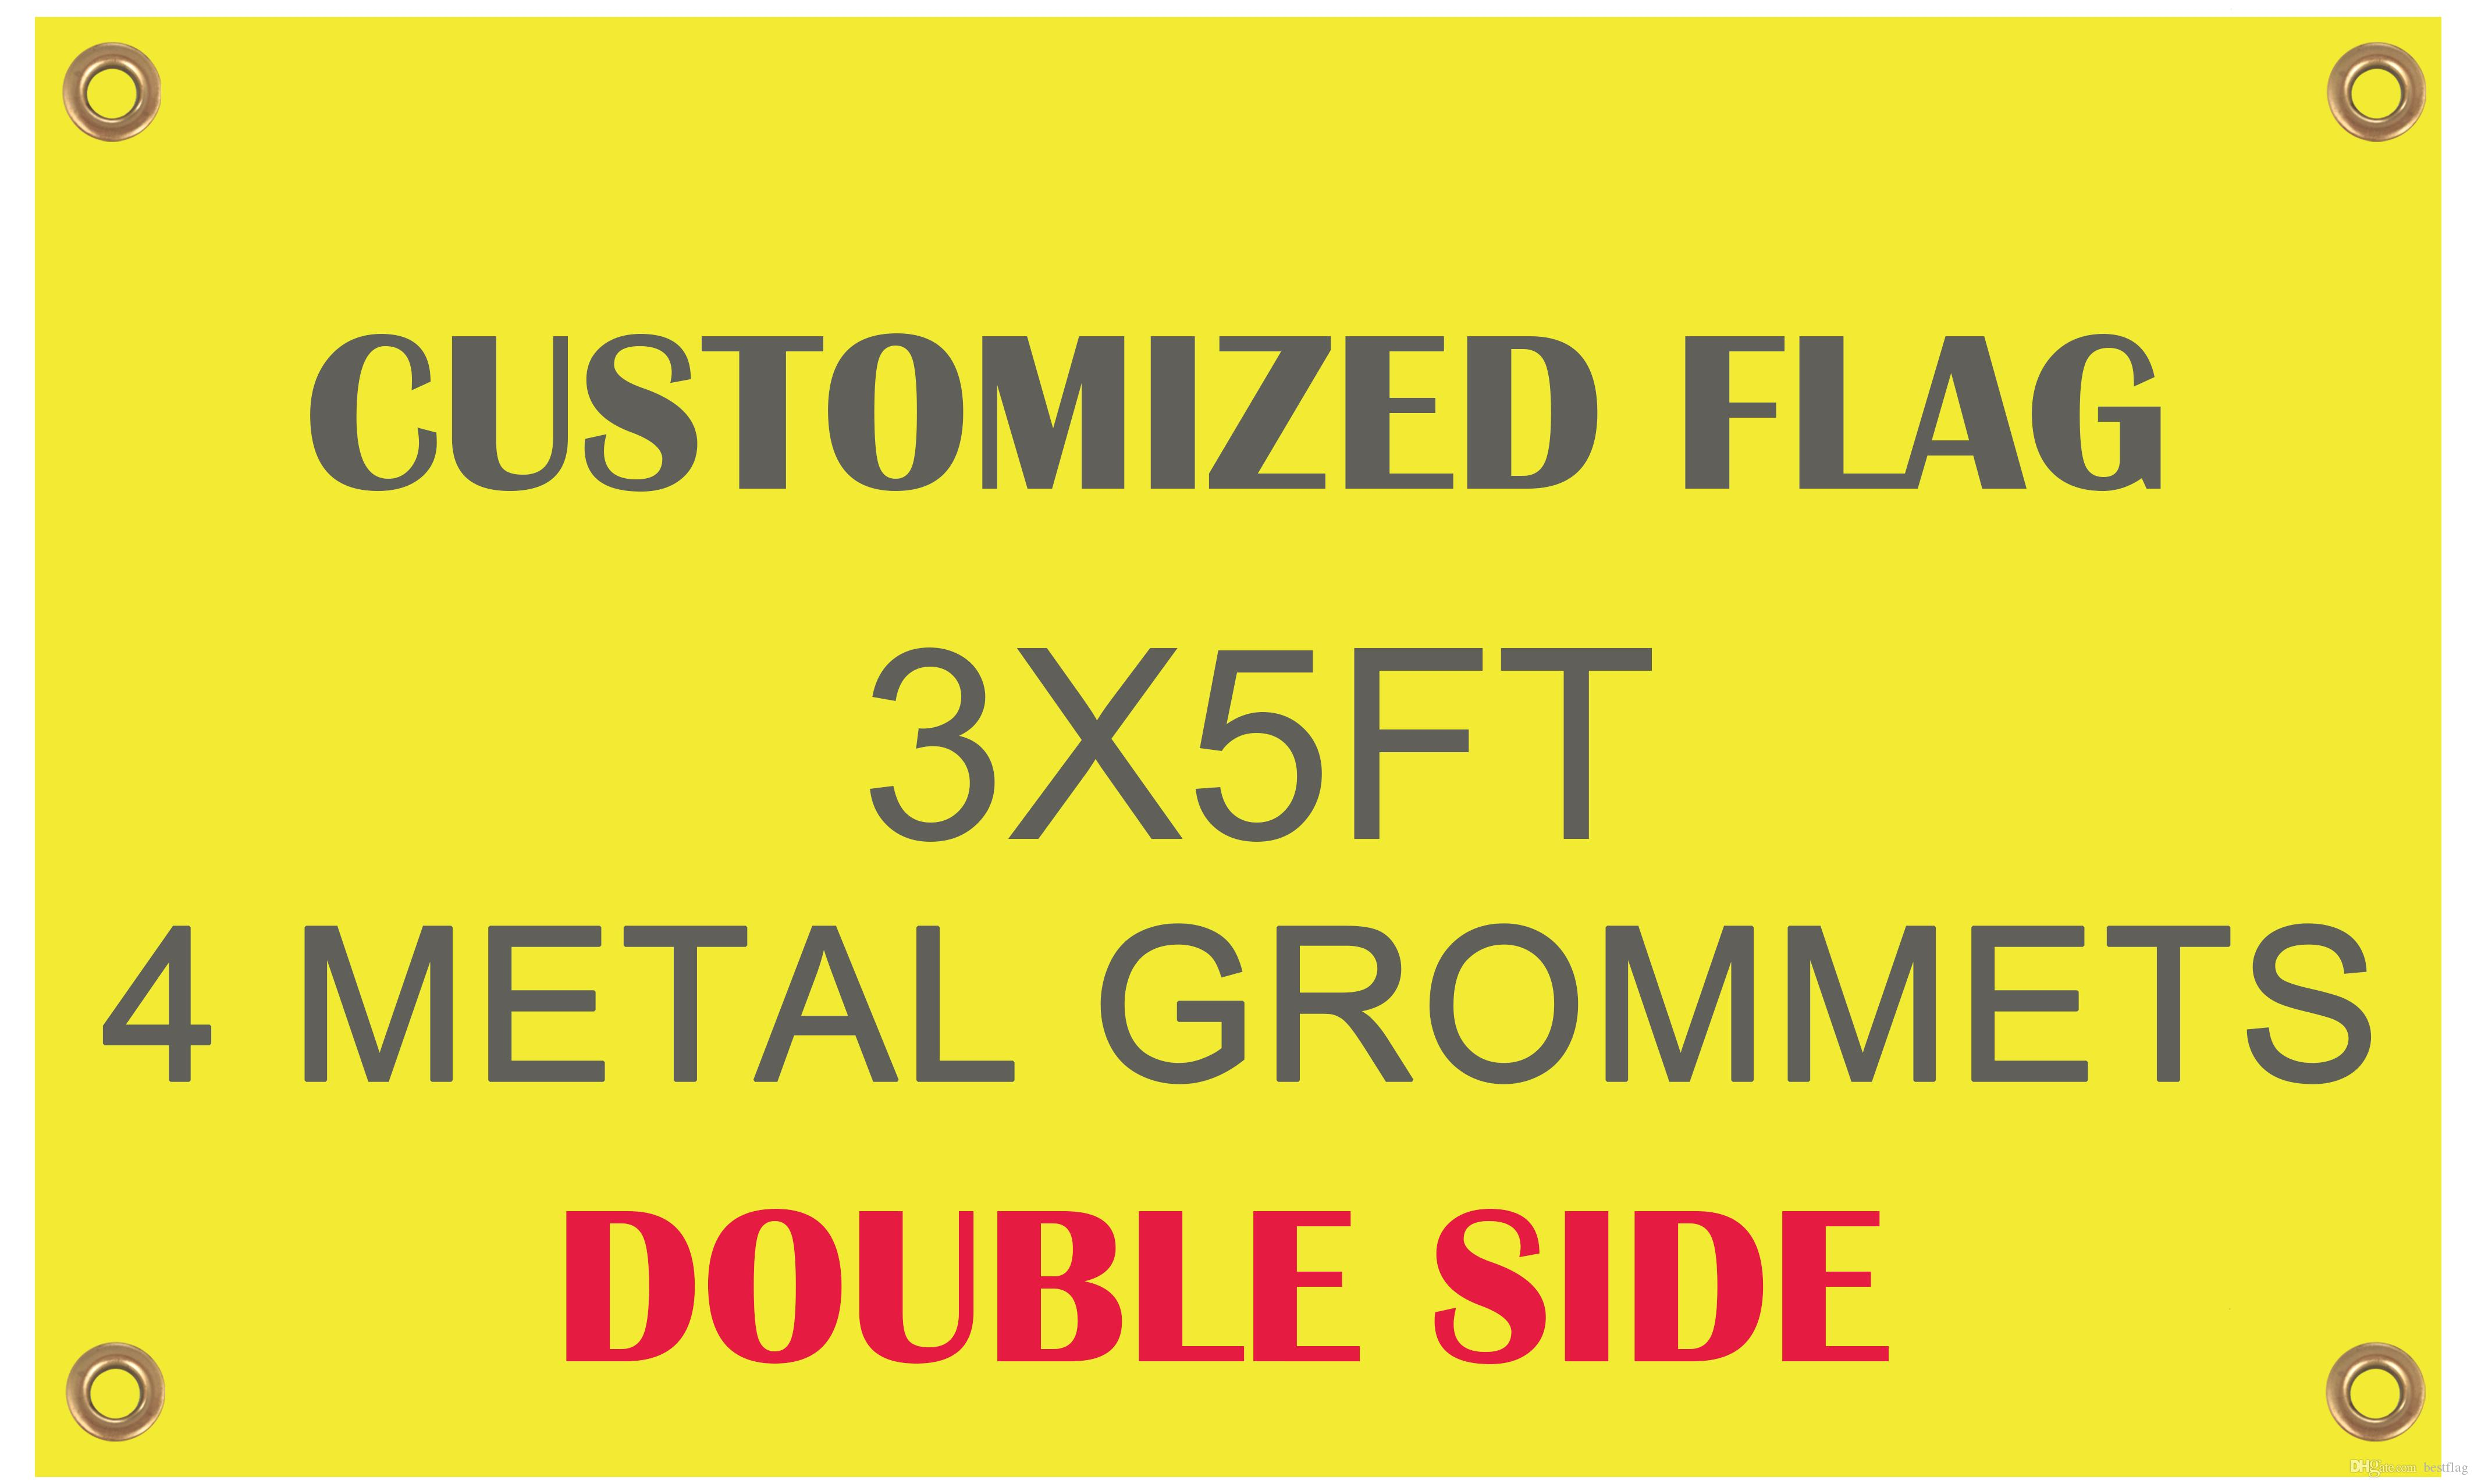 Wholesale Digital Printing Customized Flag Banner Flying Design Double Side  3x5 ft 100D Polyester Banners with Metal Grommets